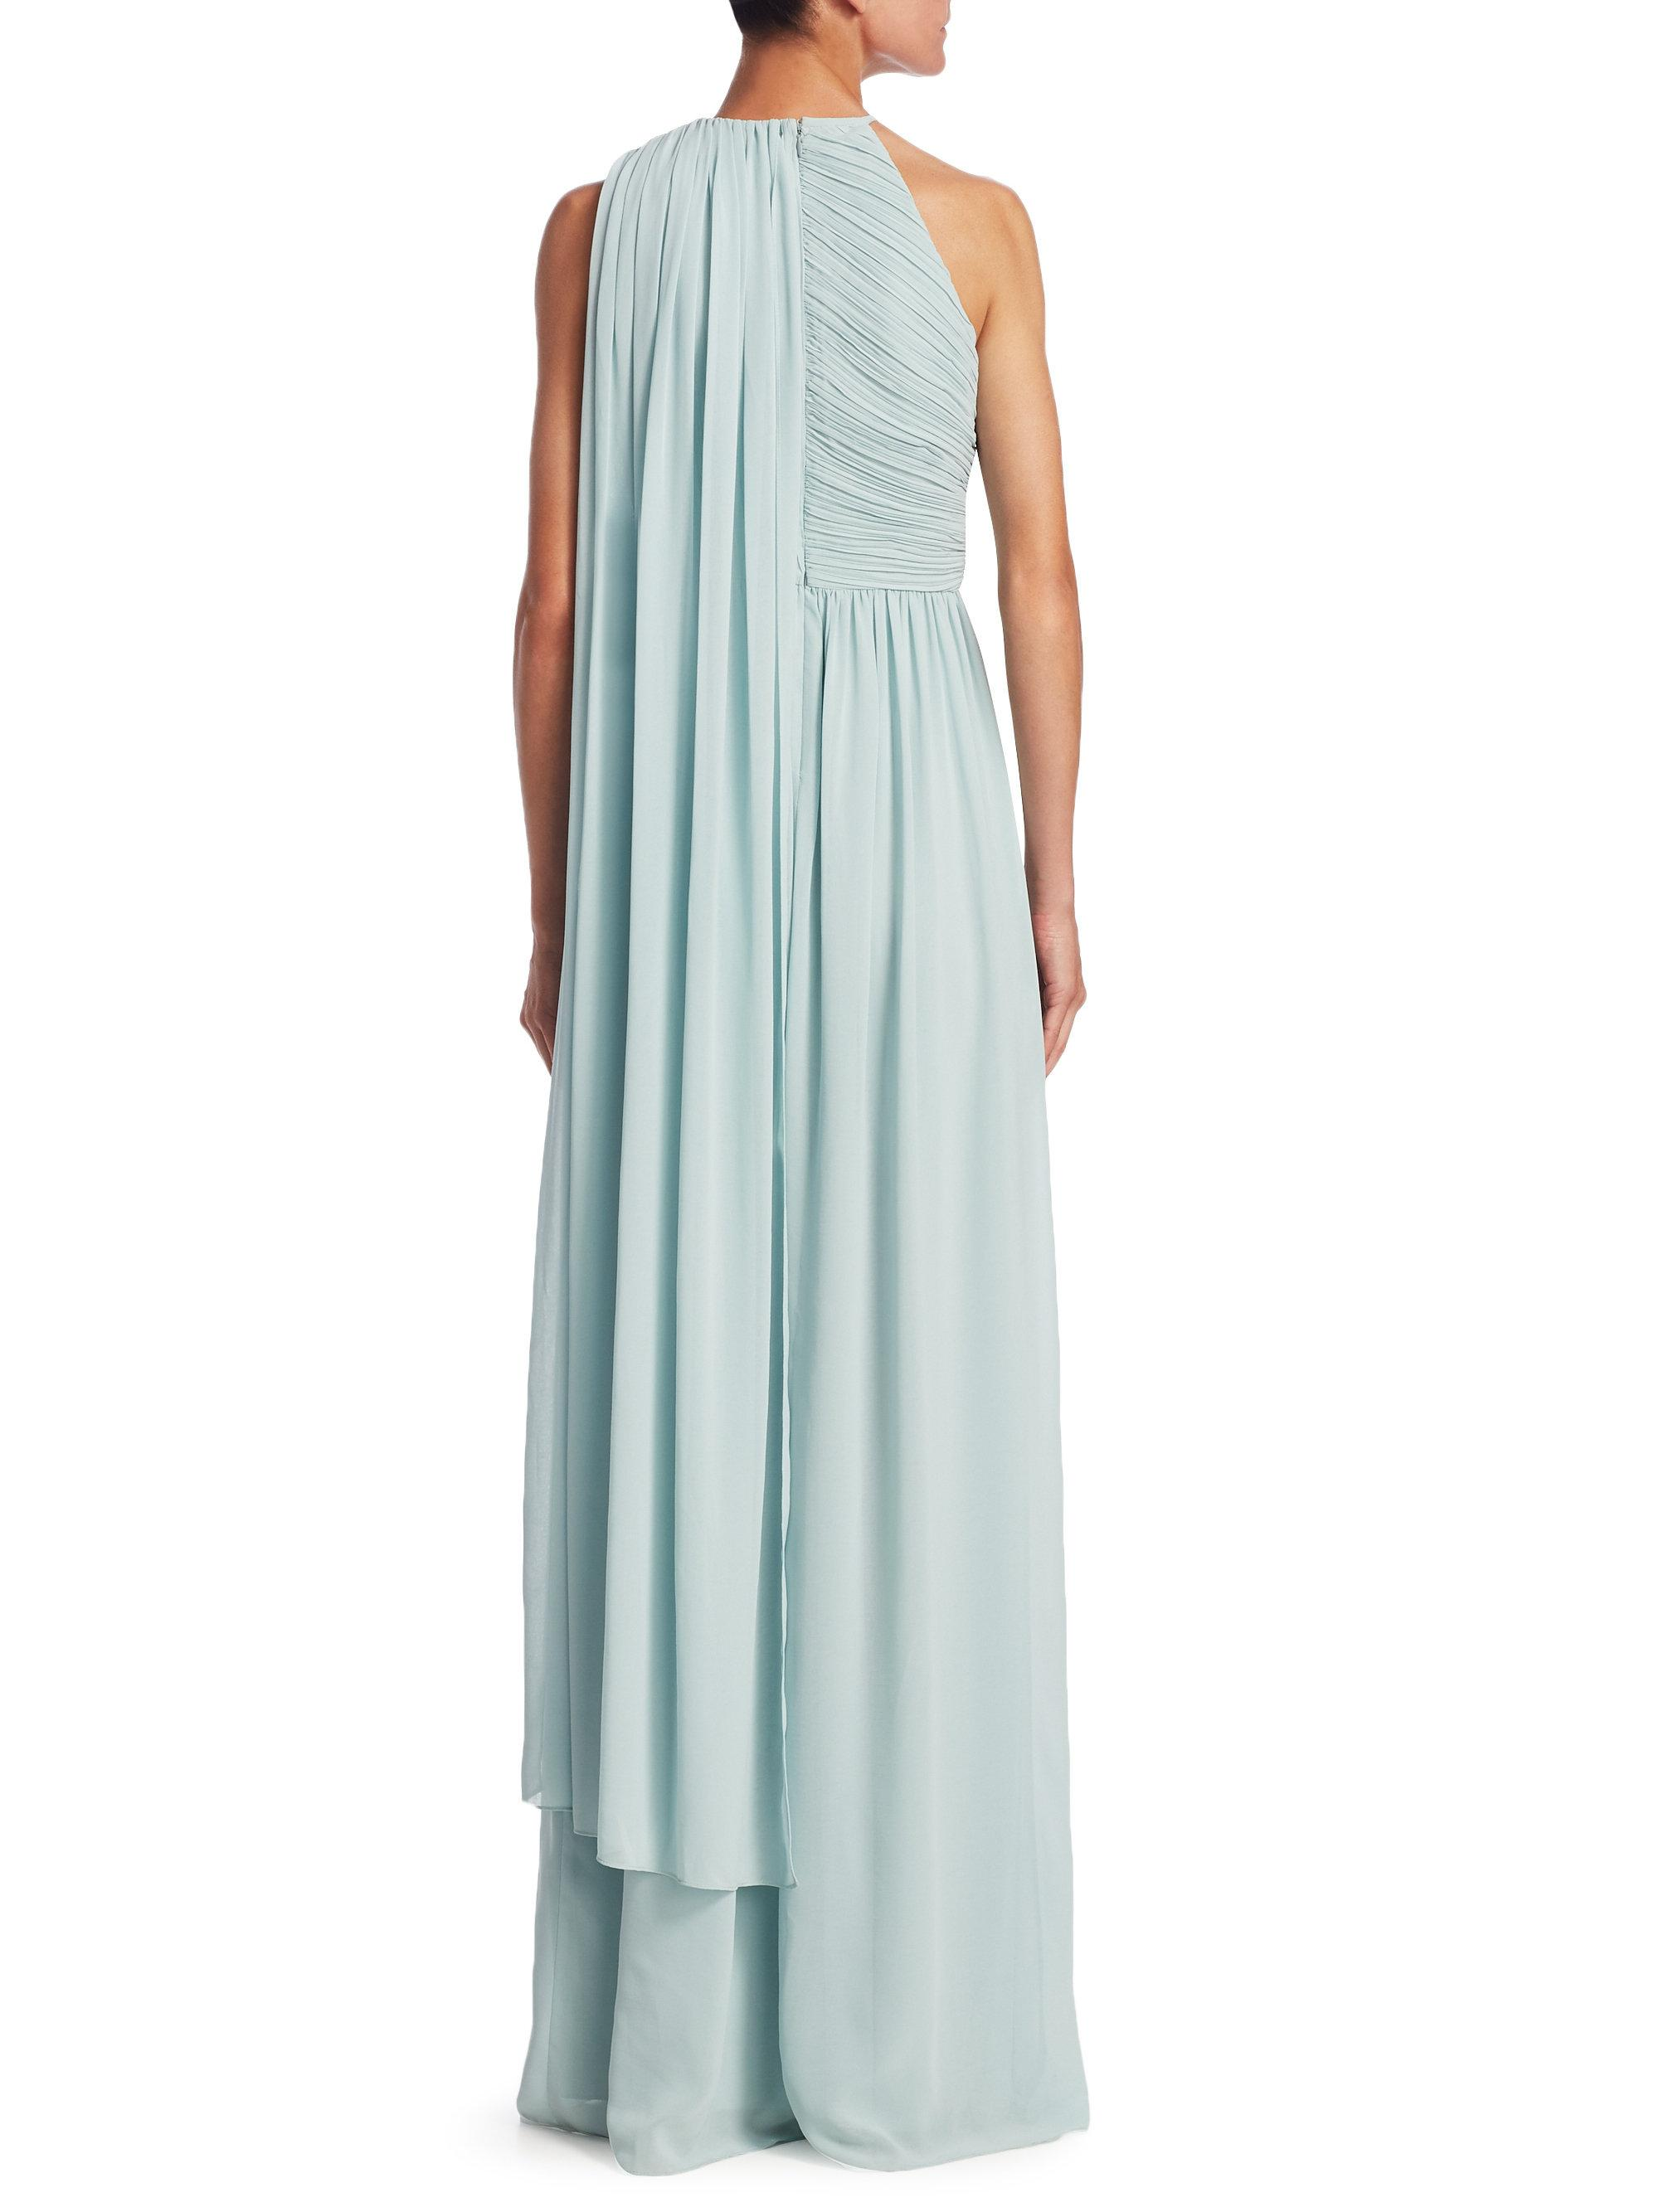 Halston Heritage Woman Layered Plissé Lamé Mini Dress Silver Size 0 Halston Heritage Discount Low Price 100% Authentic Cheap Online Free Shipping Ebay Manchester Great Sale Sale Online 6uIRwqy4WI